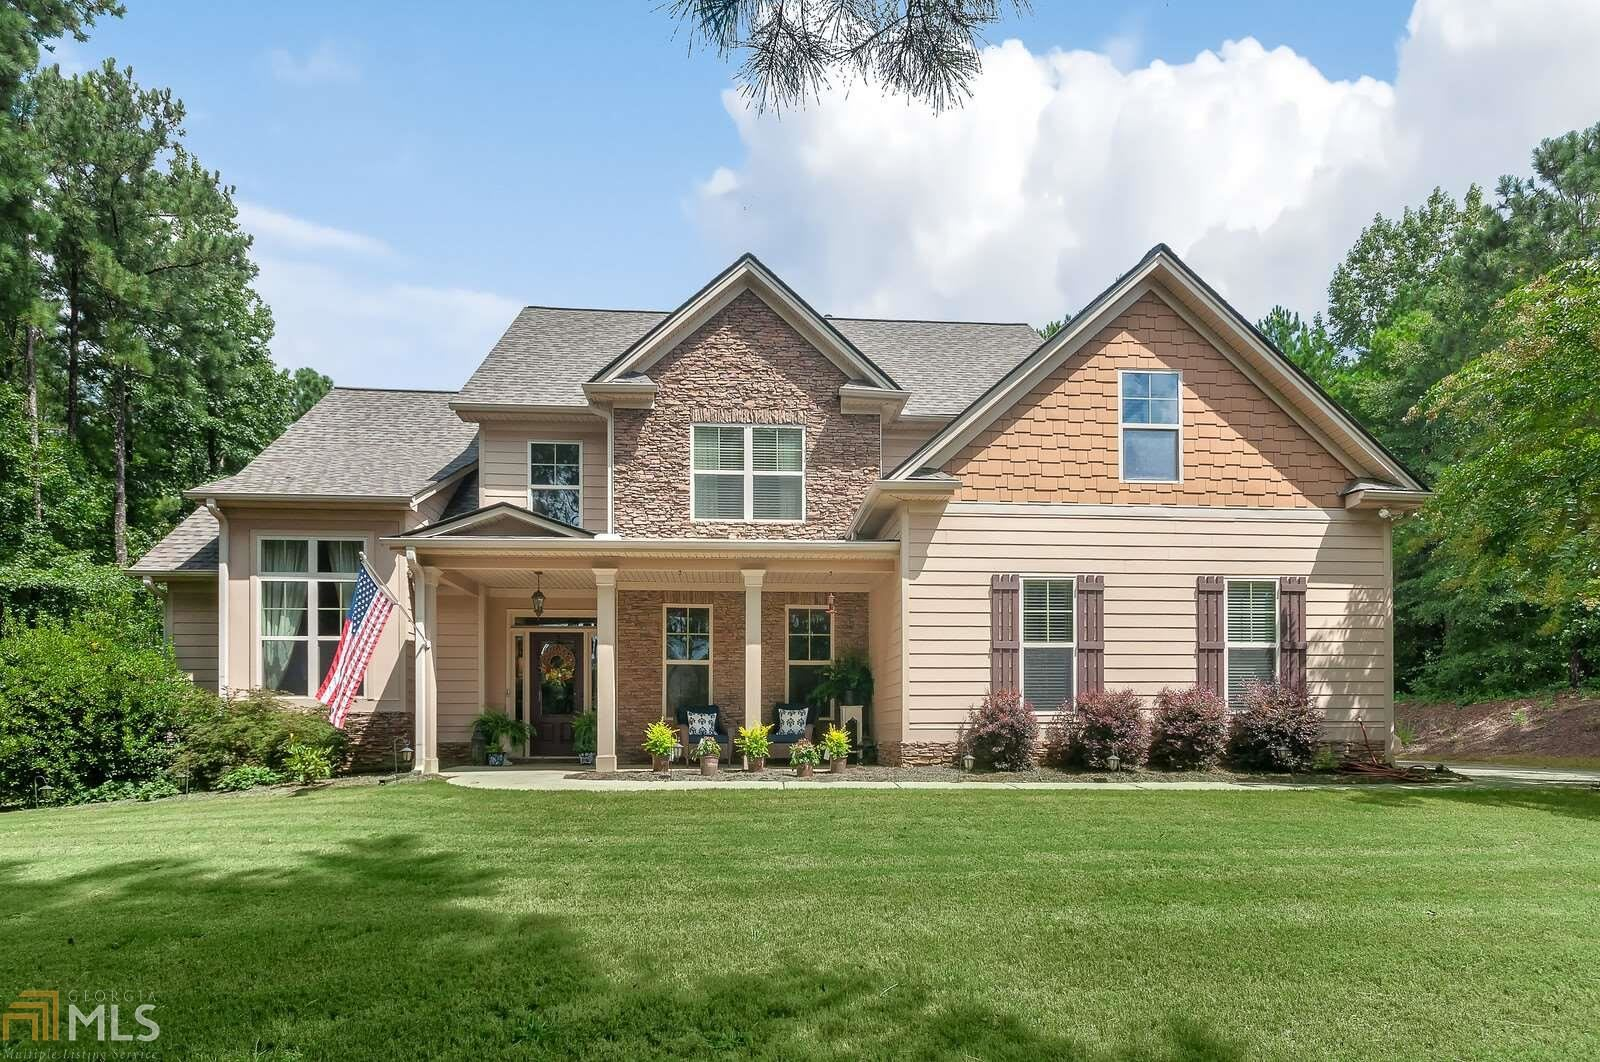 81 Timbercreek Estates Dr, Sharpsburg, GA 30277 - MLS#: 8847345